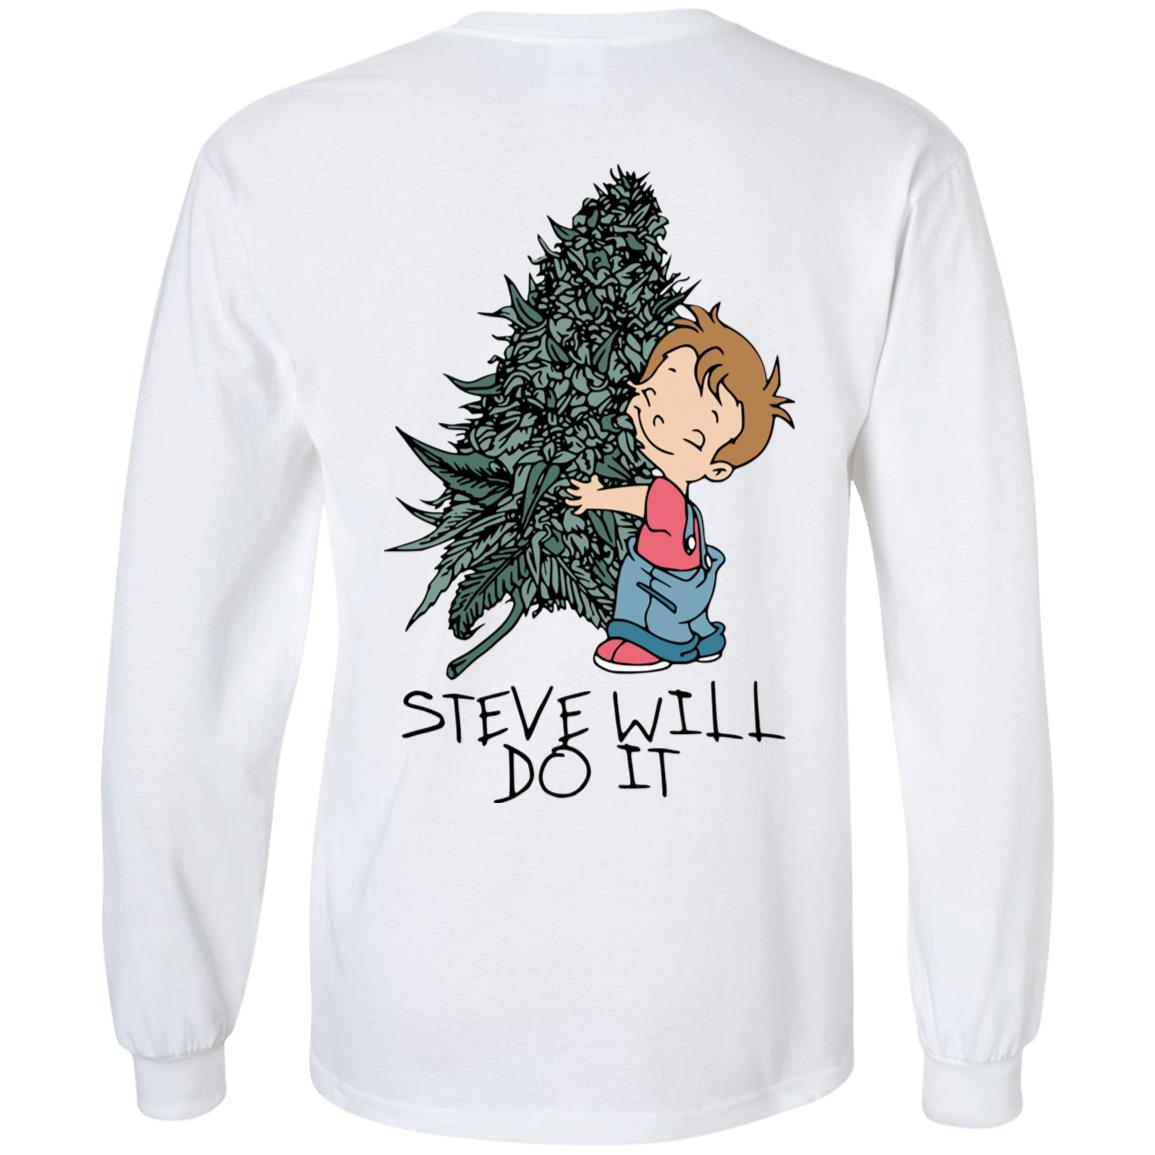 Nelk Boys Merch Stevewilldoit First Love Tee Tipatee If you feeling crafty, why not create your own?! nelk boys merch stevewilldoit first love tee